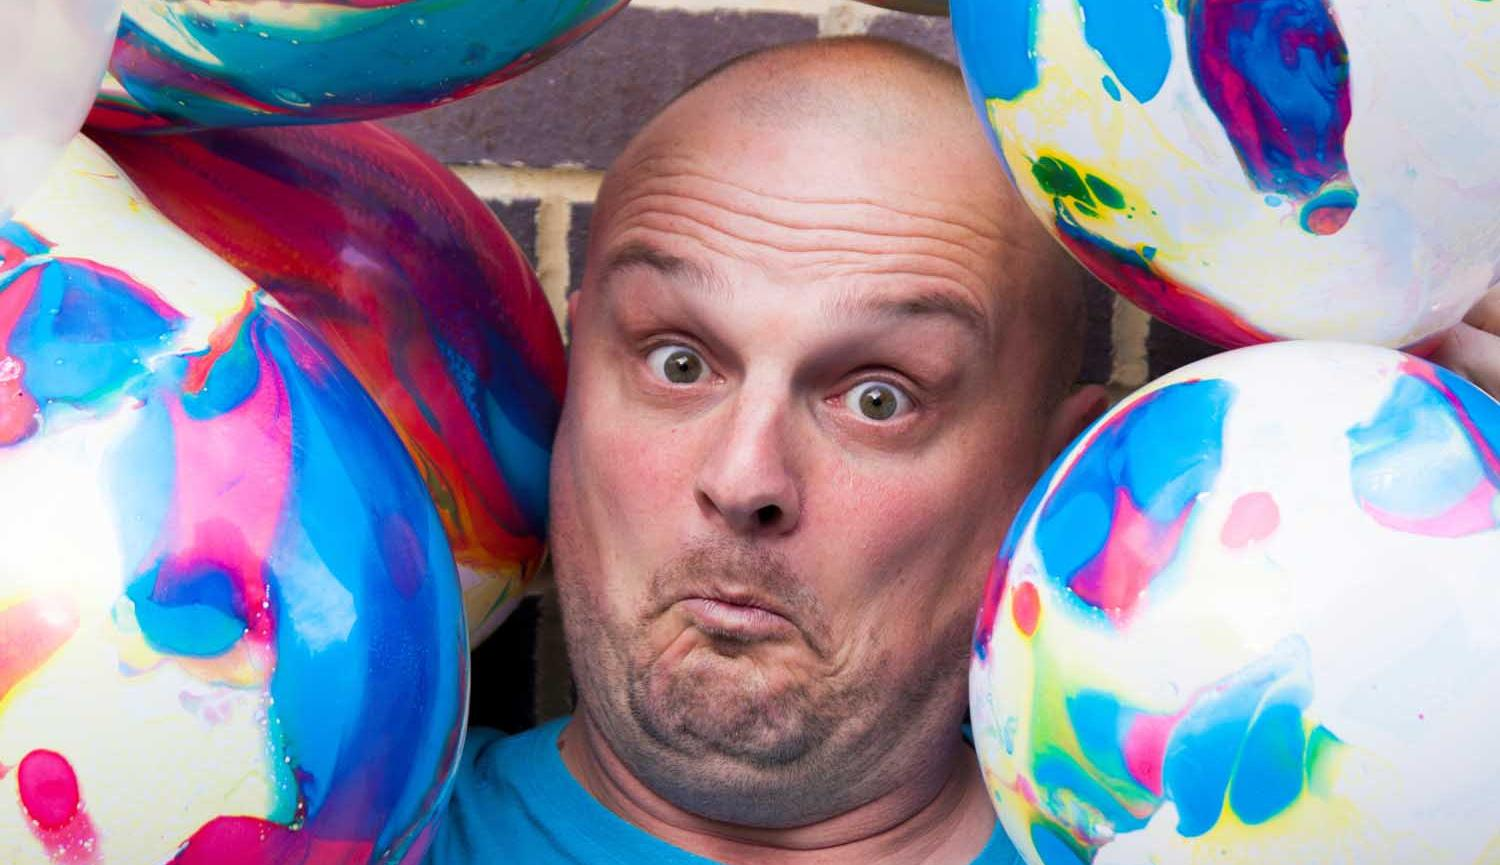 Jesterval Lee Kyle Family Show image of mans face surrounded by beach balls